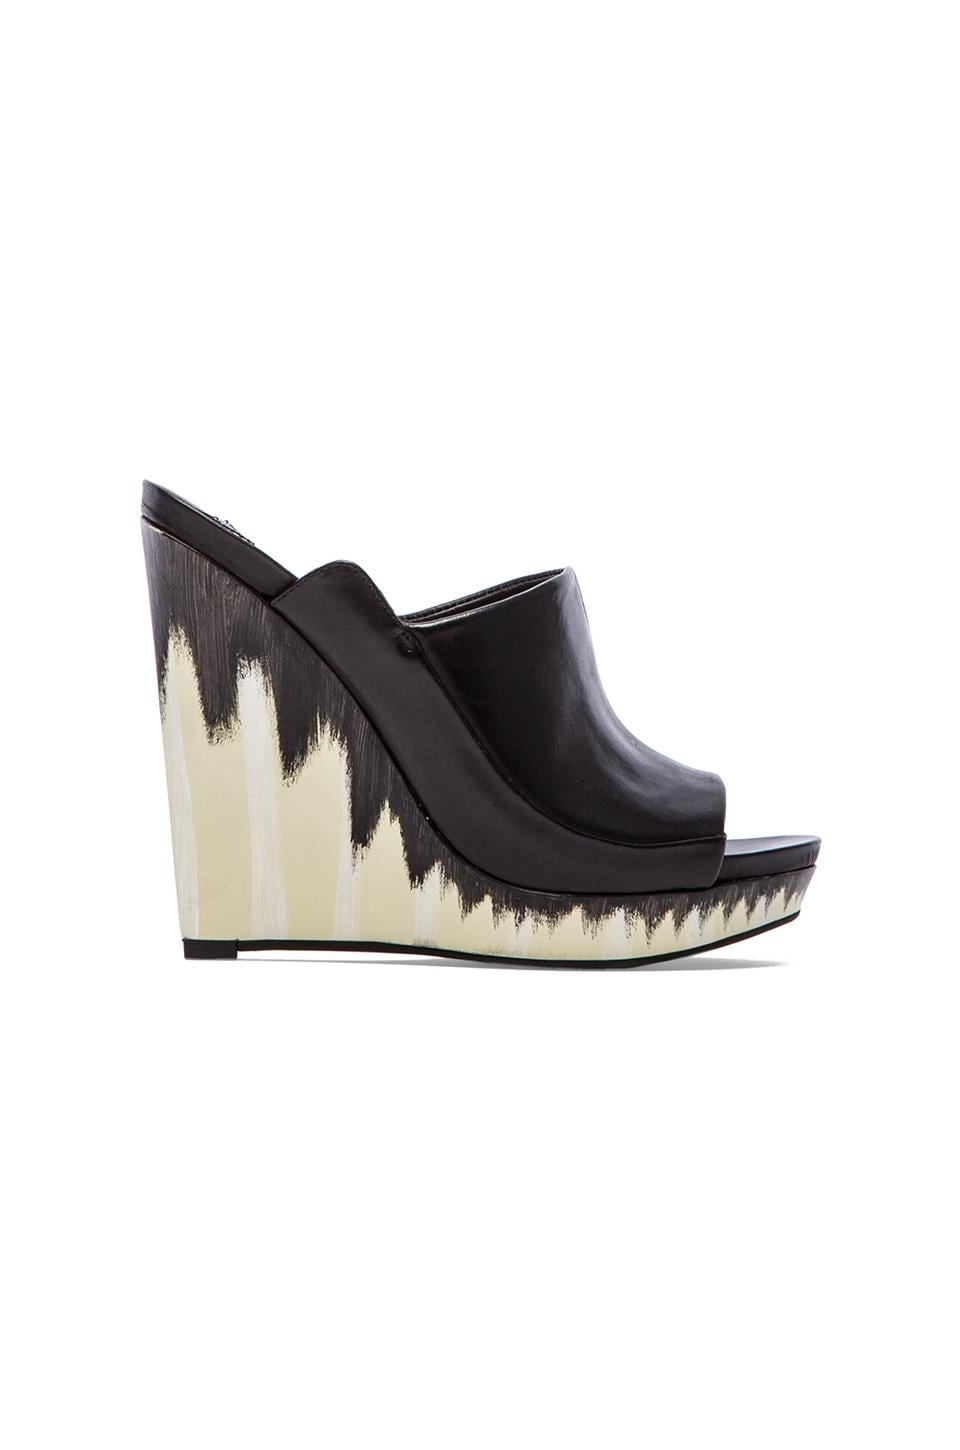 DEREK LAM 10 CROSBY Glinda Wedge in Black Leather